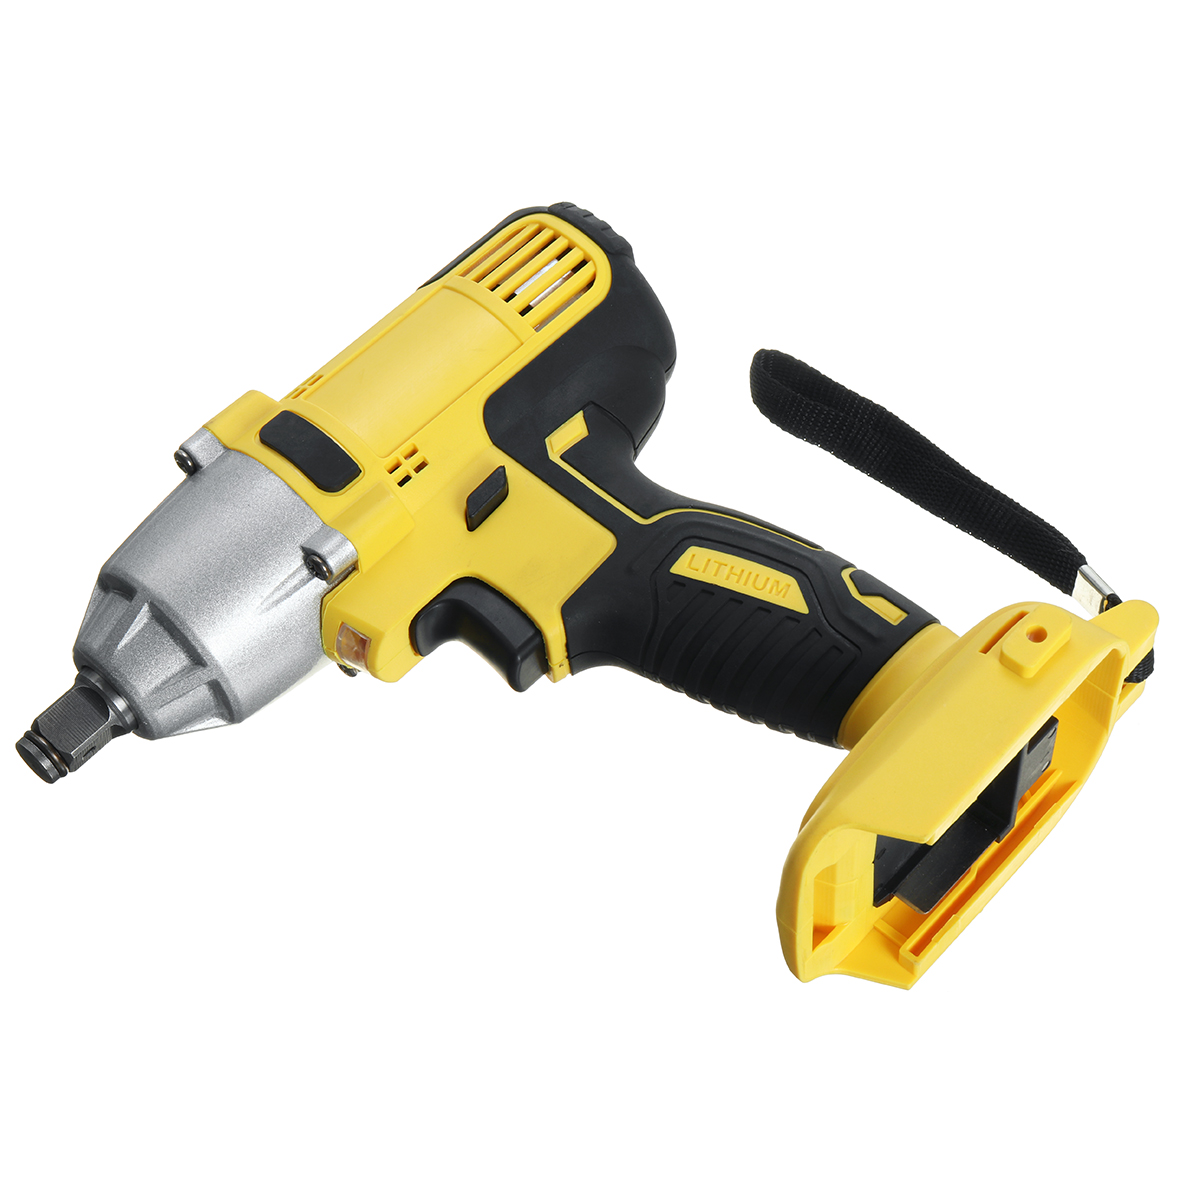 18V Cordless Impact Wrench 3000R/MIN High Torque Impact Wrench Tool Adapted To 18V Makita Battery